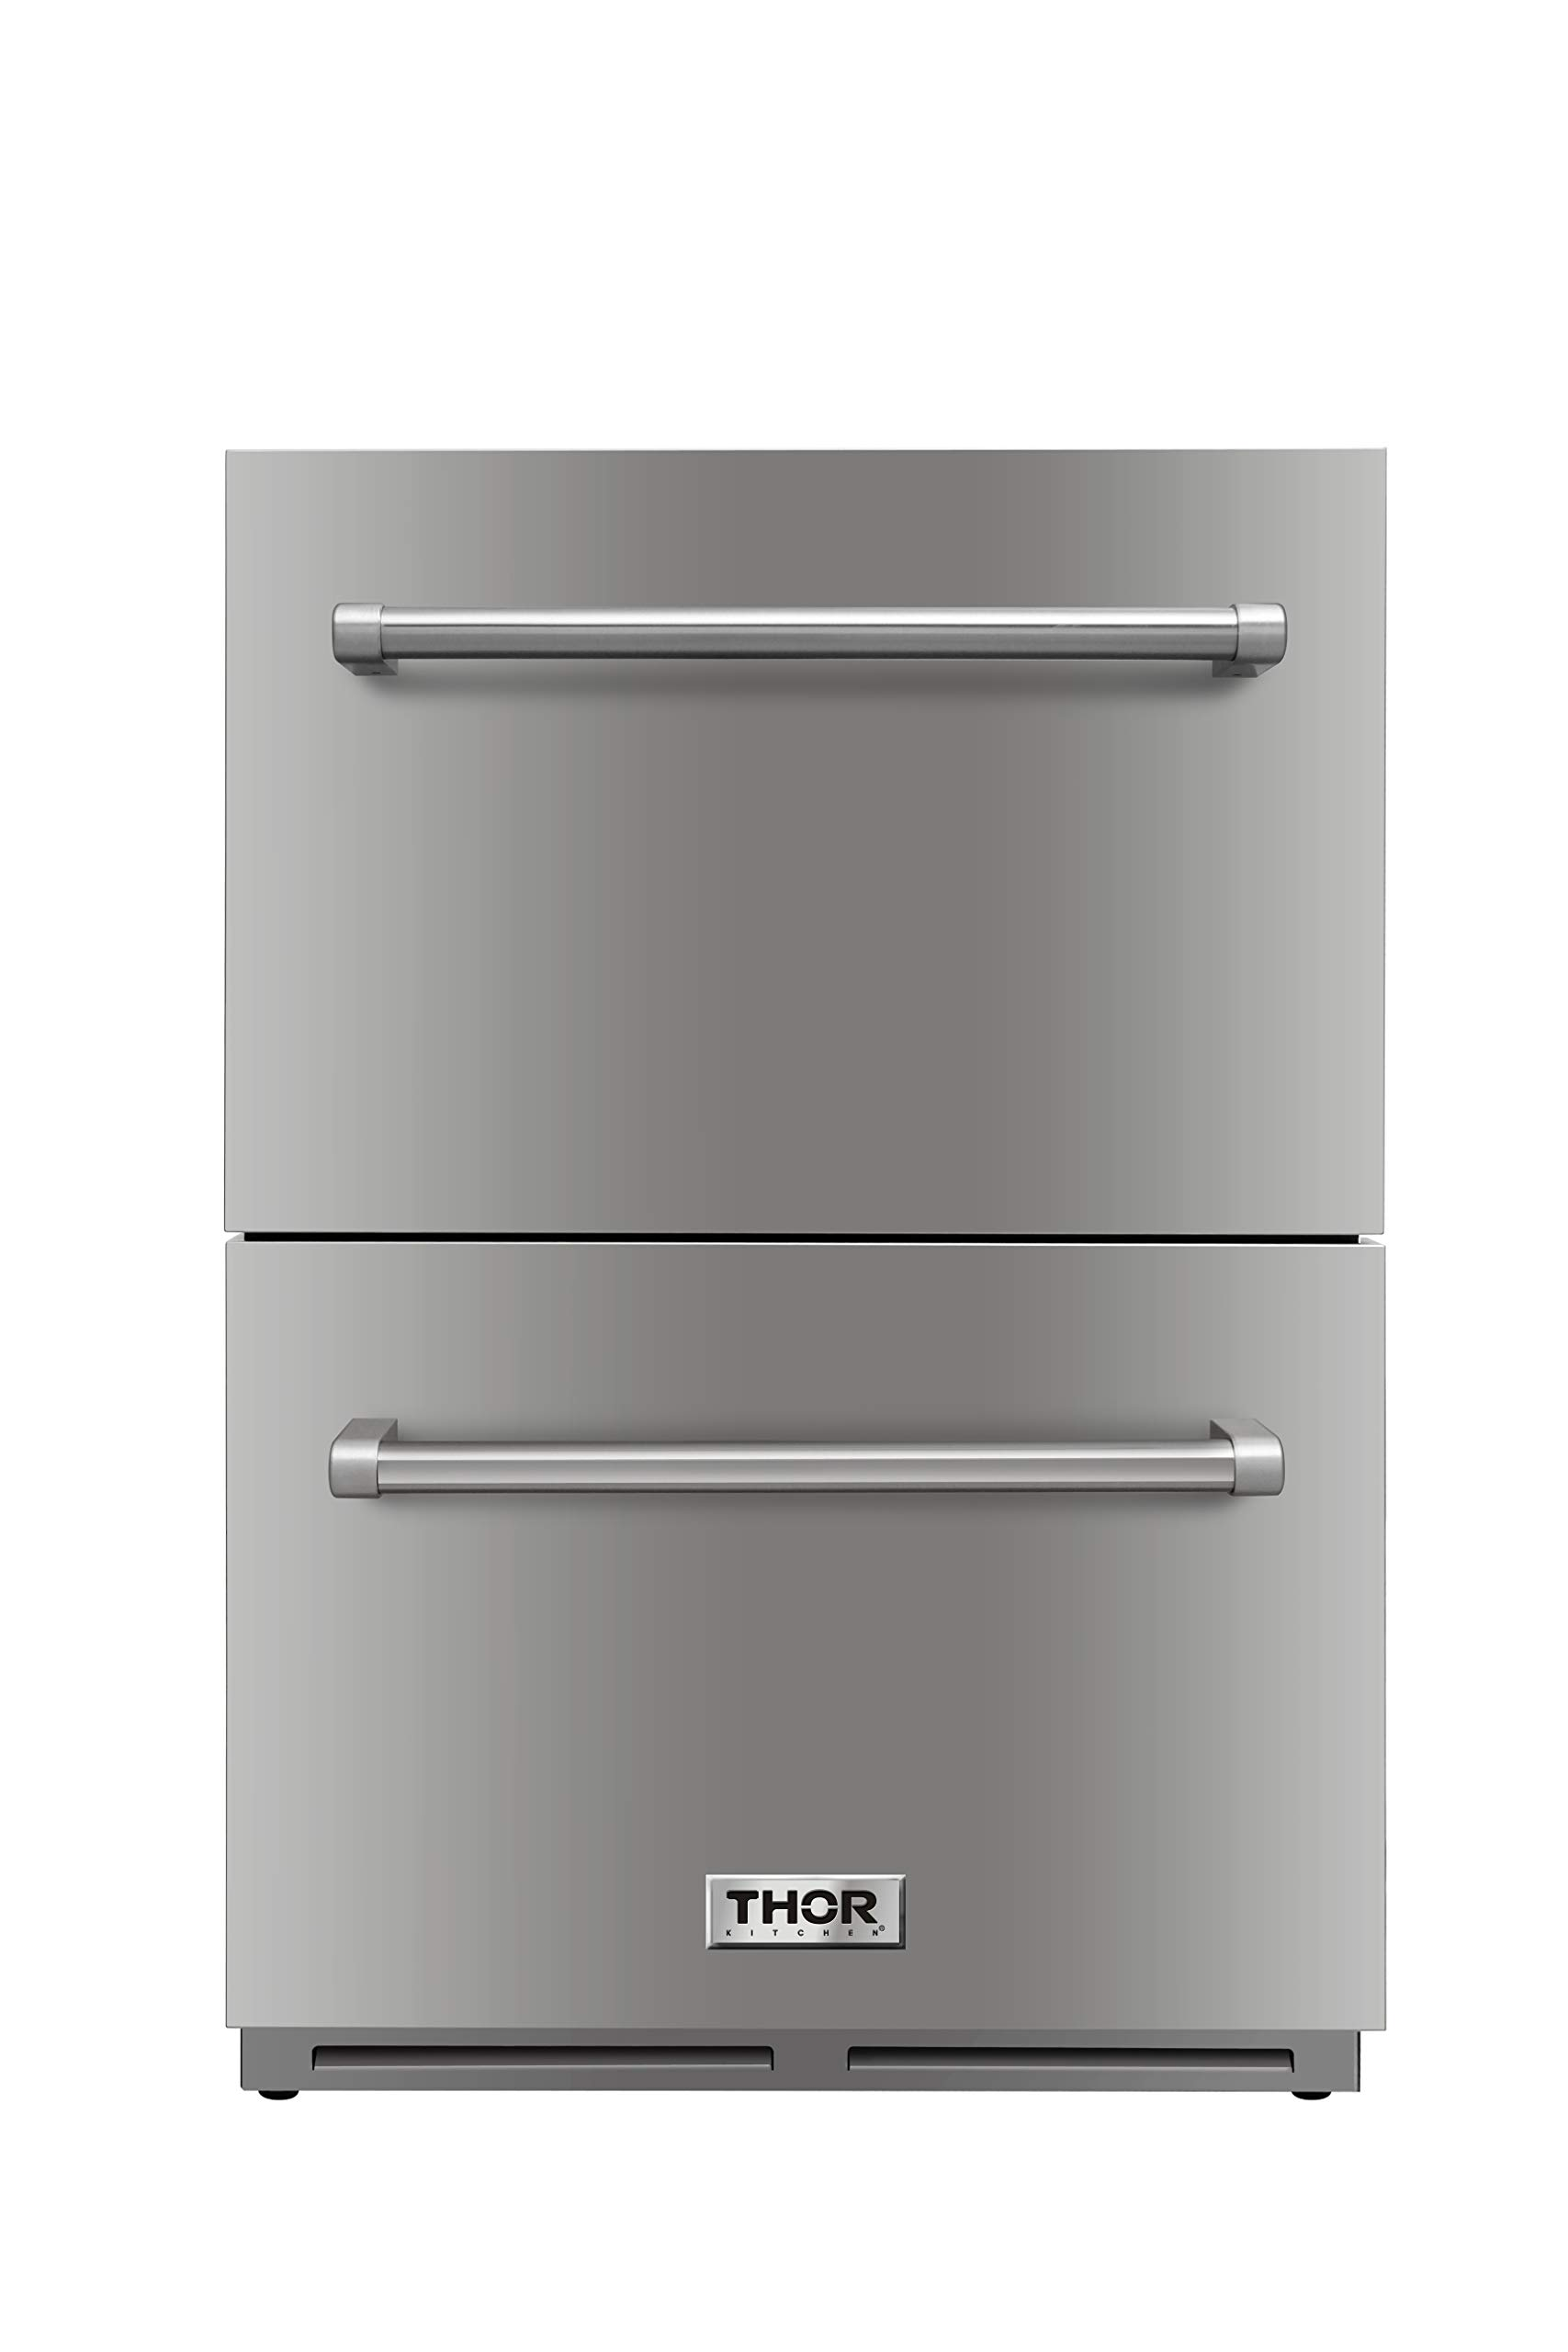 Thor Kitchen Refrigerator Ventilated 5 3cu ft